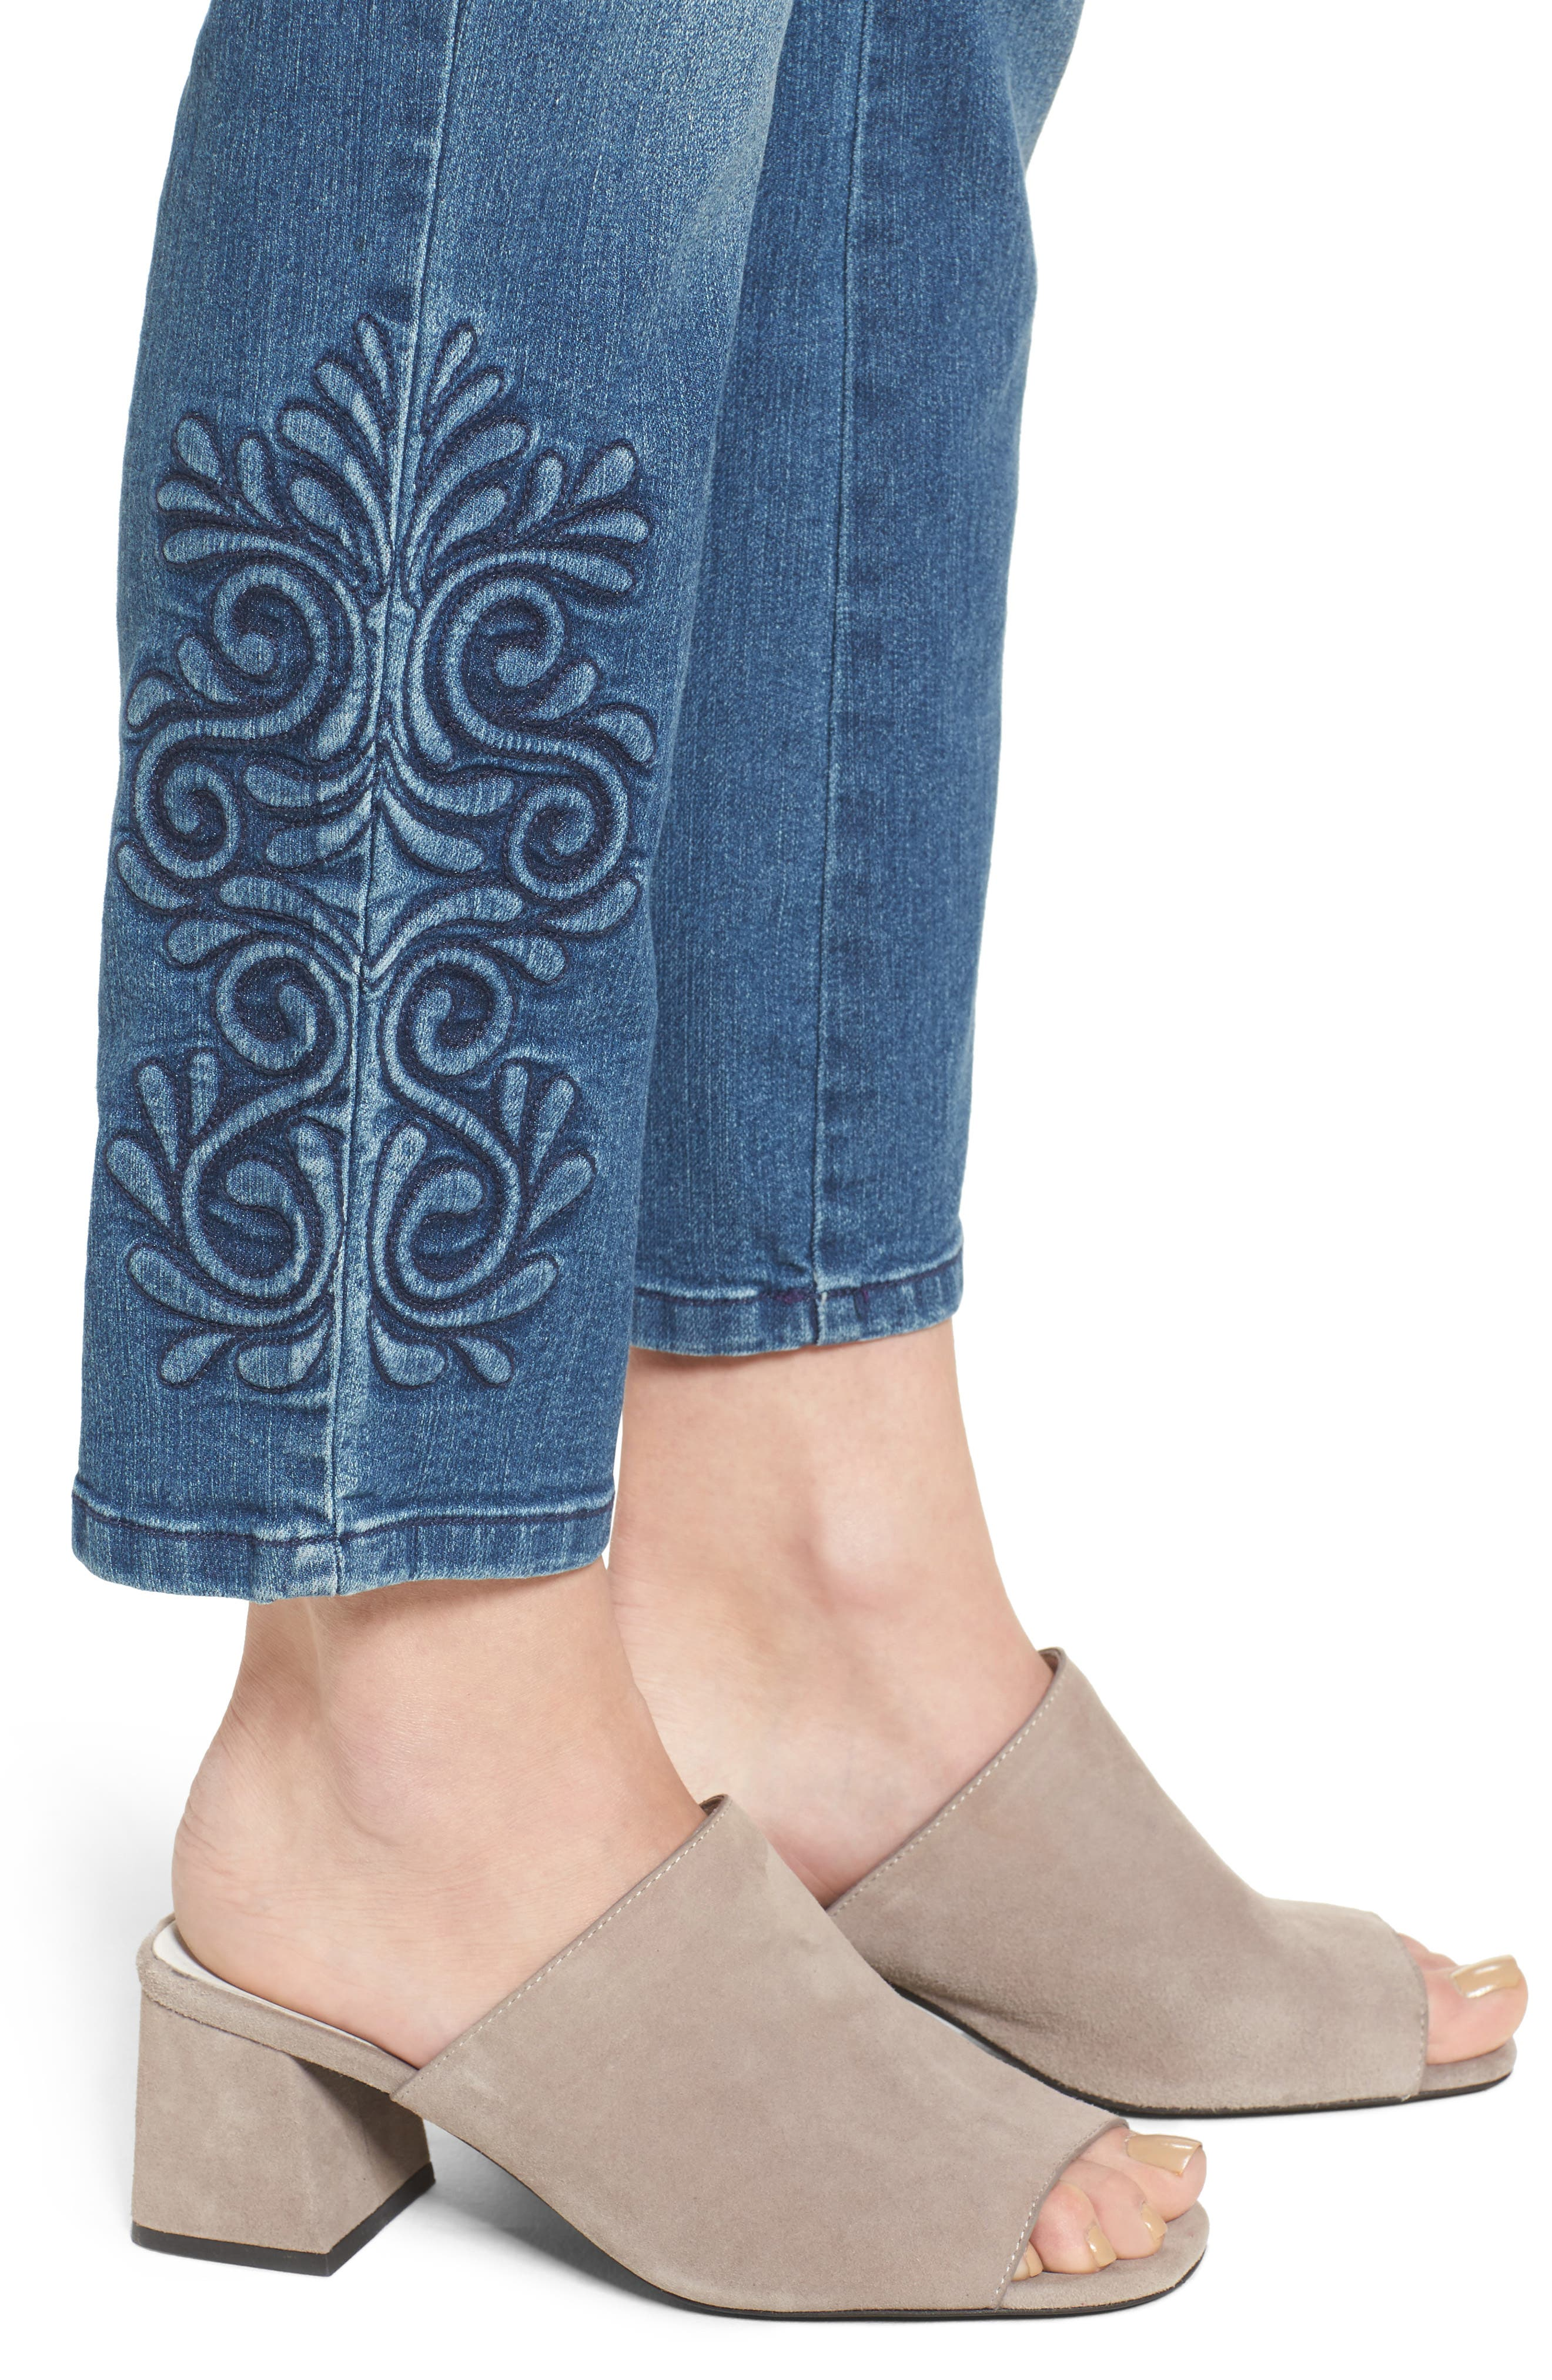 Ira Embroidered Relaxed Ankle Jeans,                             Alternate thumbnail 4, color,                             Saint Germain